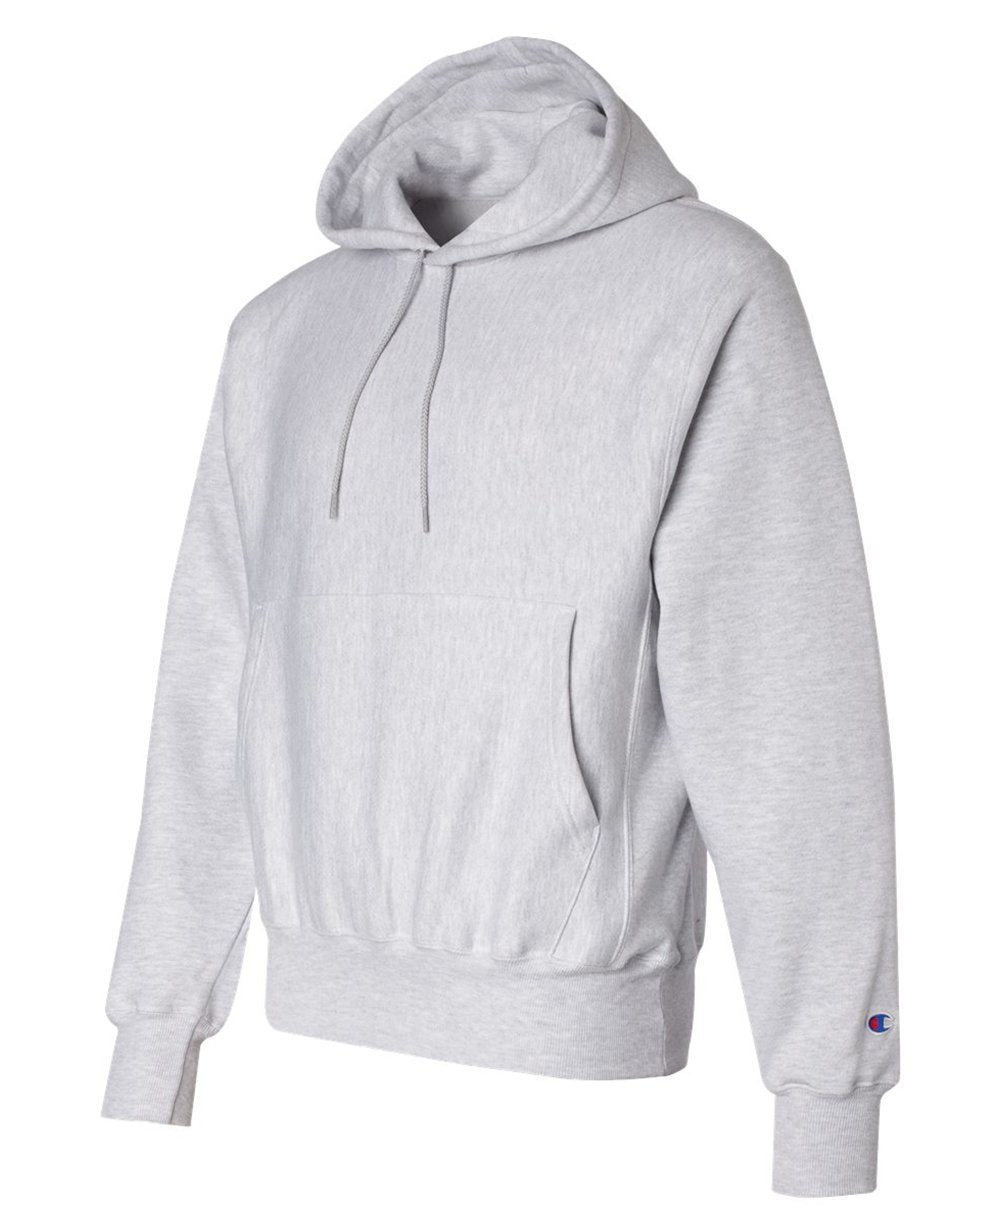 Sleeve Logo Pullover Hoodies in Ash